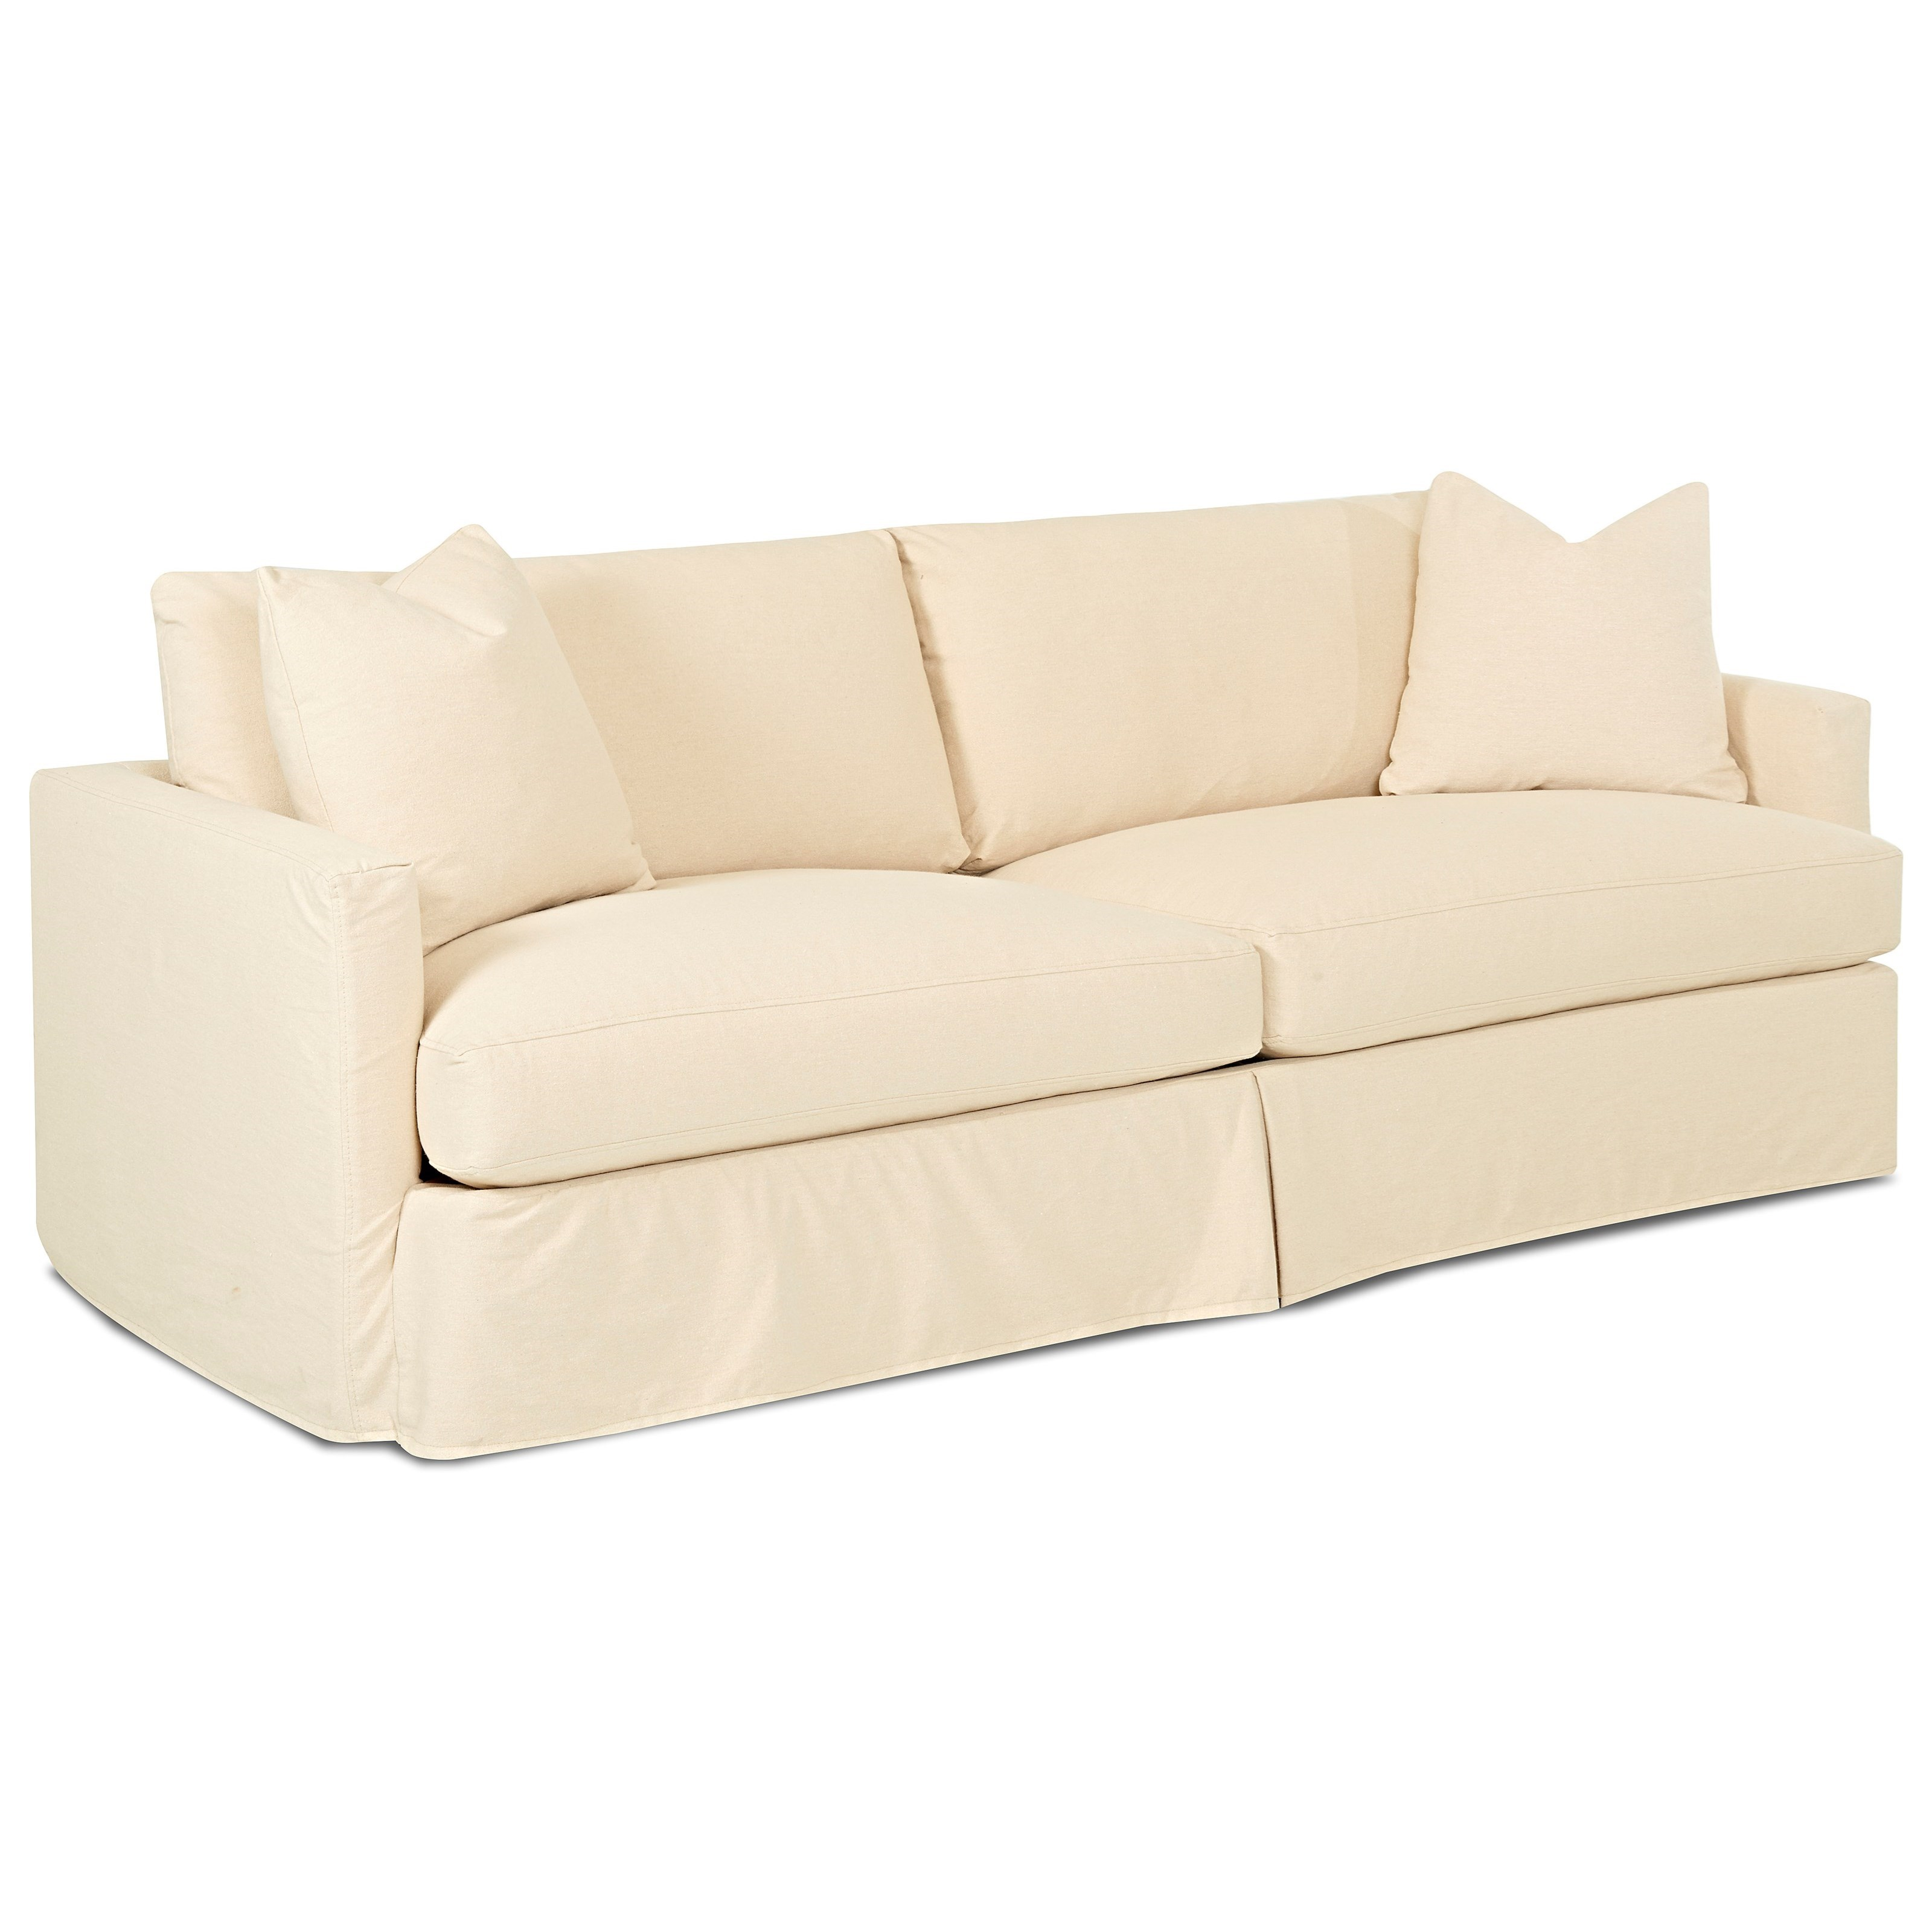 Sofa Slipcovers Large: Extra Large Sofa With Slipcover By Klaussner